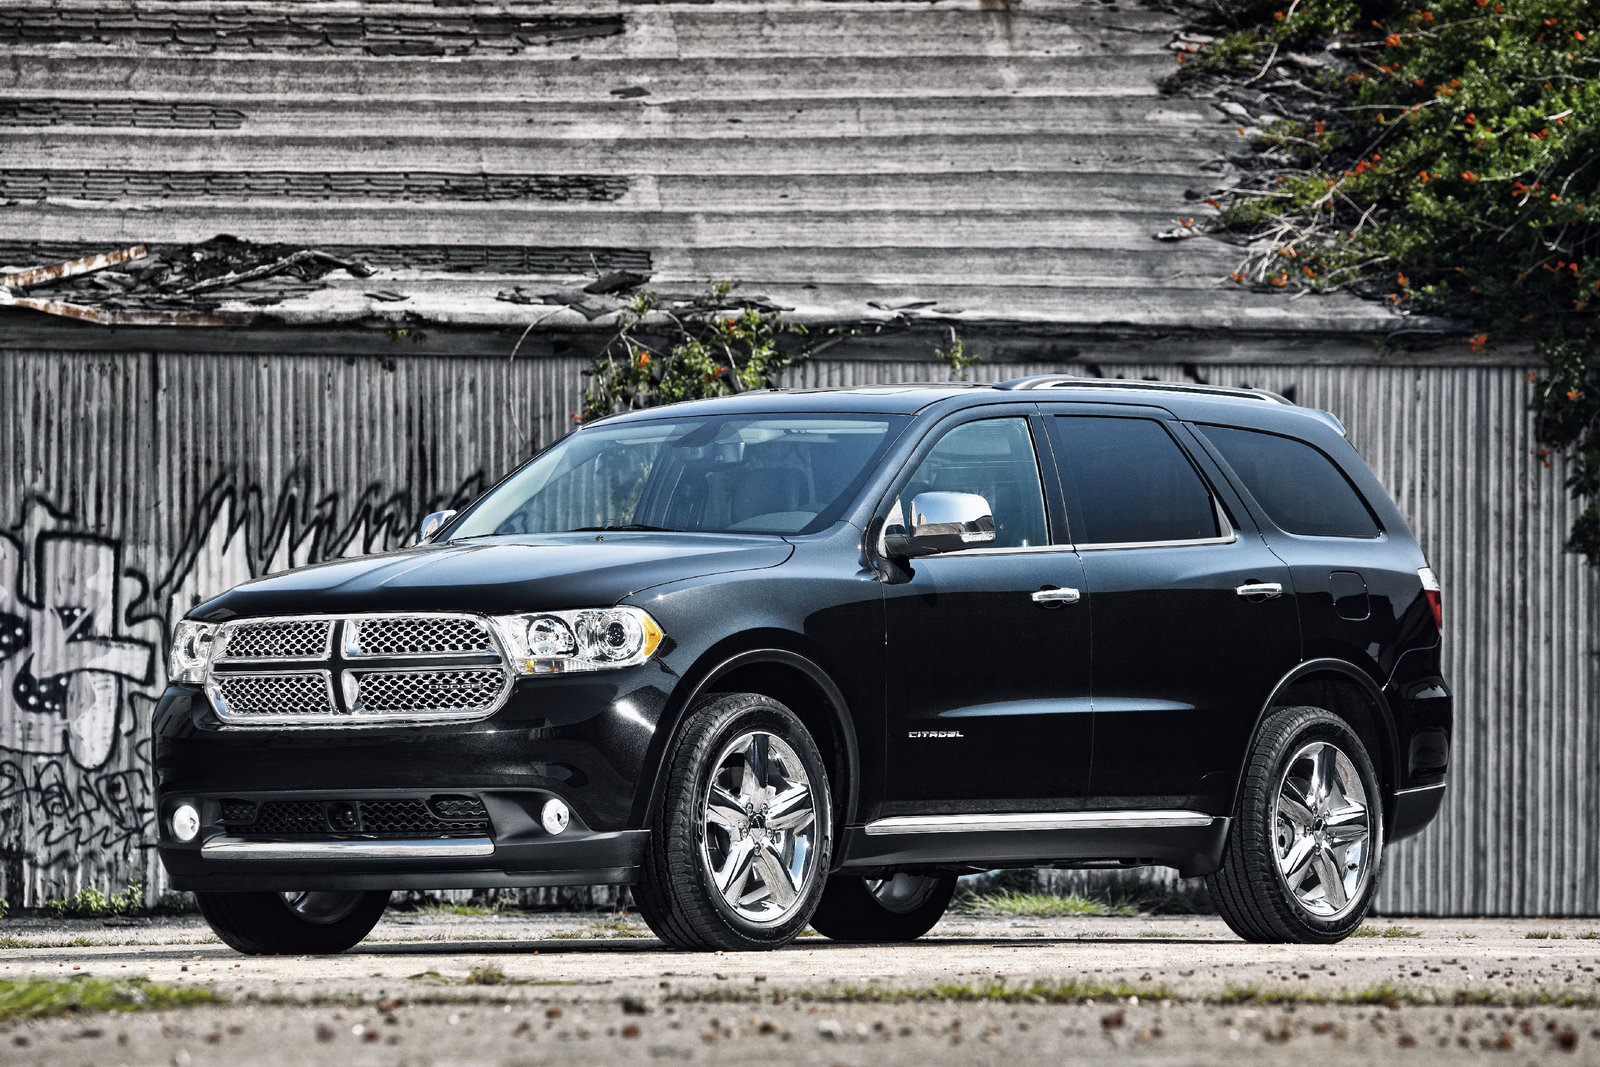 Dodge durango photo - 2